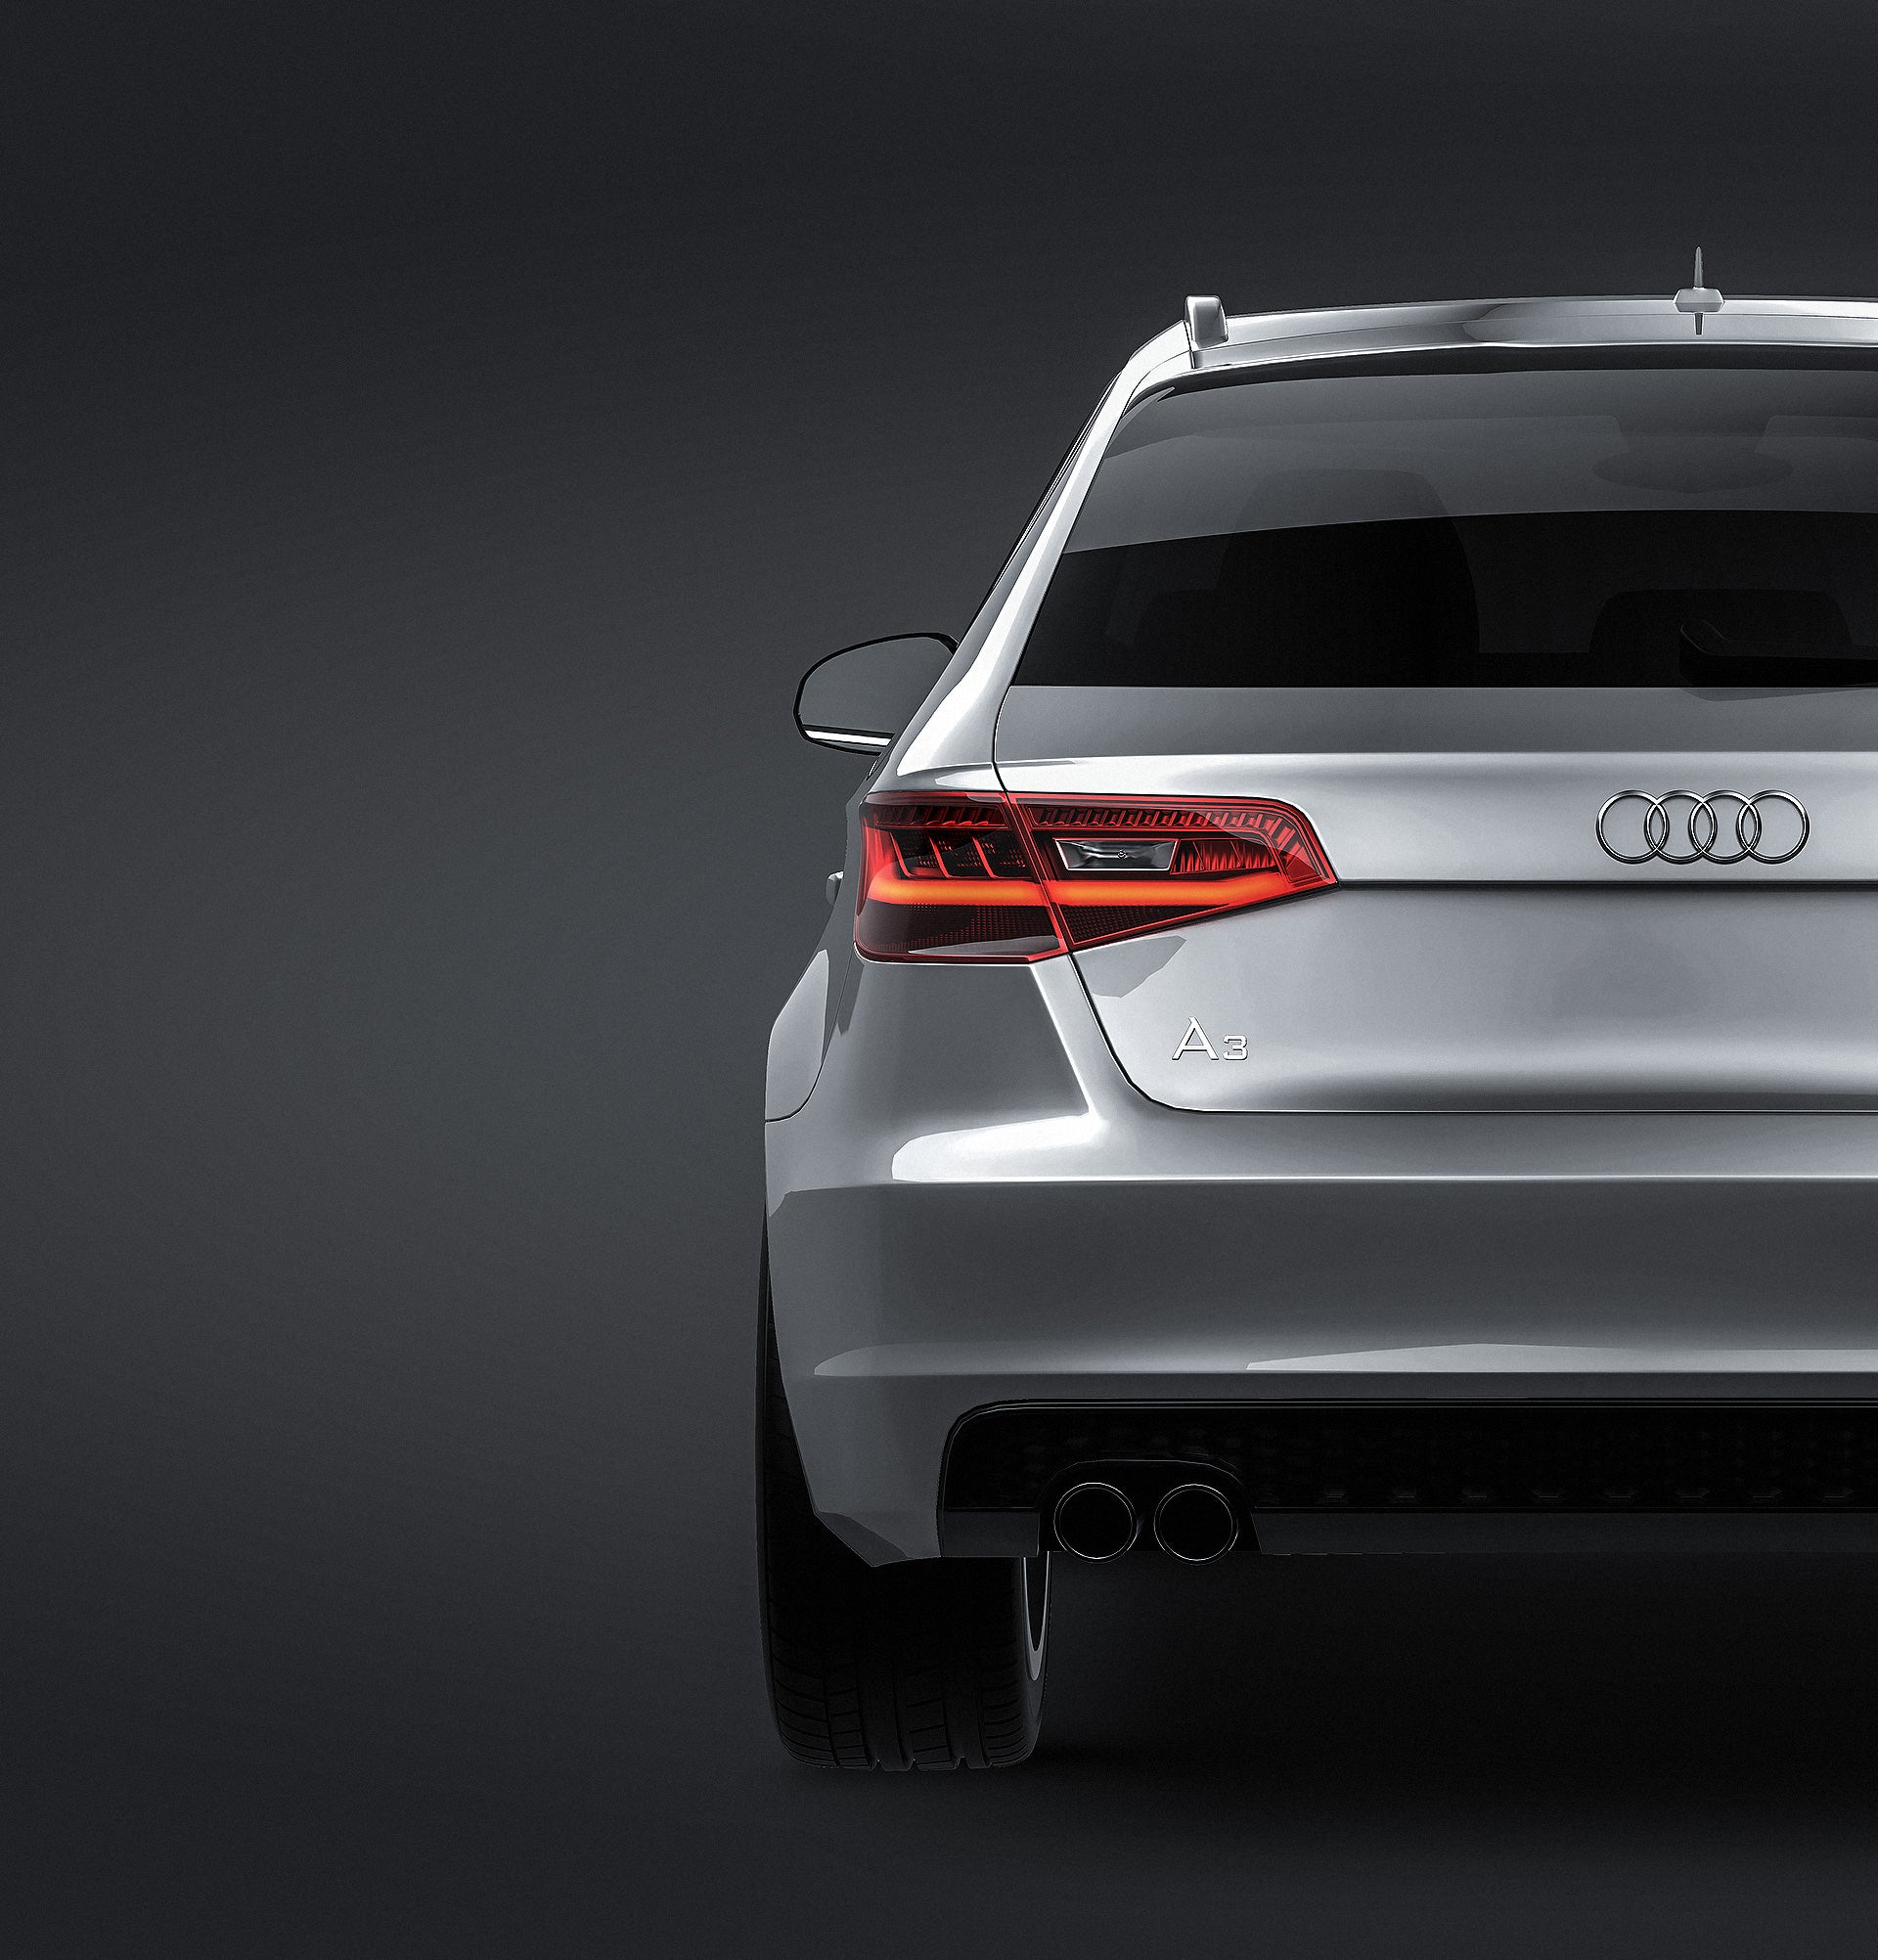 Audi A3 5-door 2014 S-line - all sides Car Mockup Template.psd